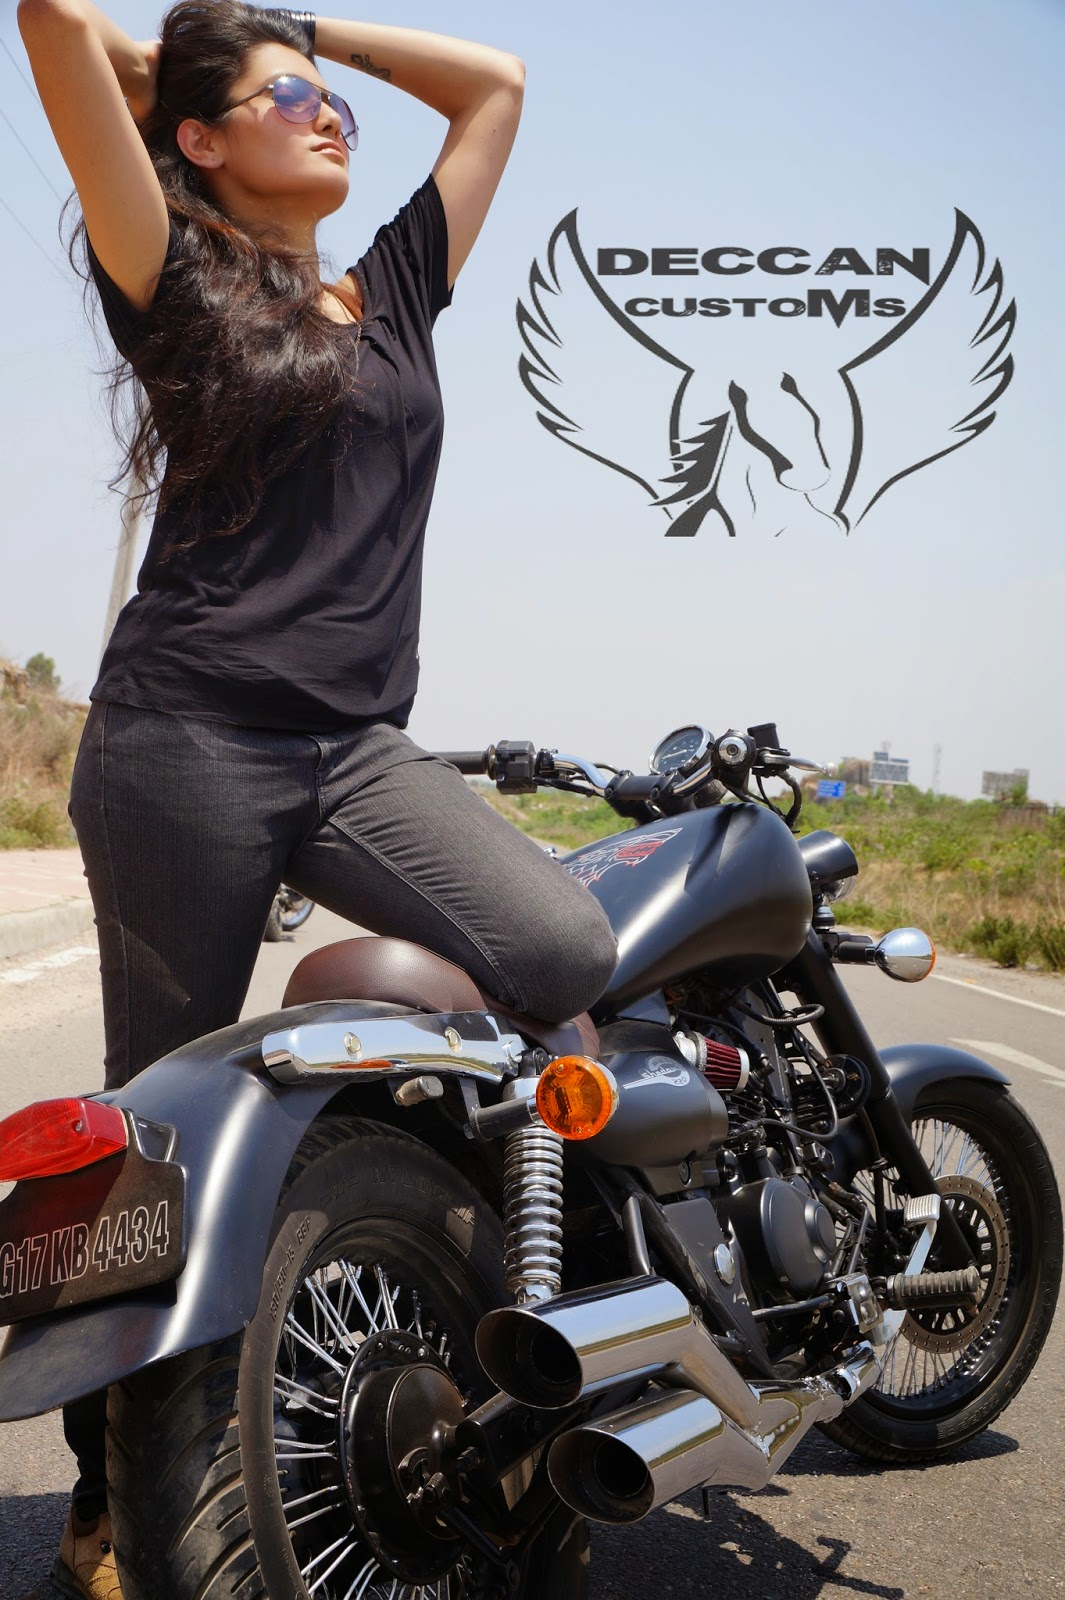 customize my motorcycle